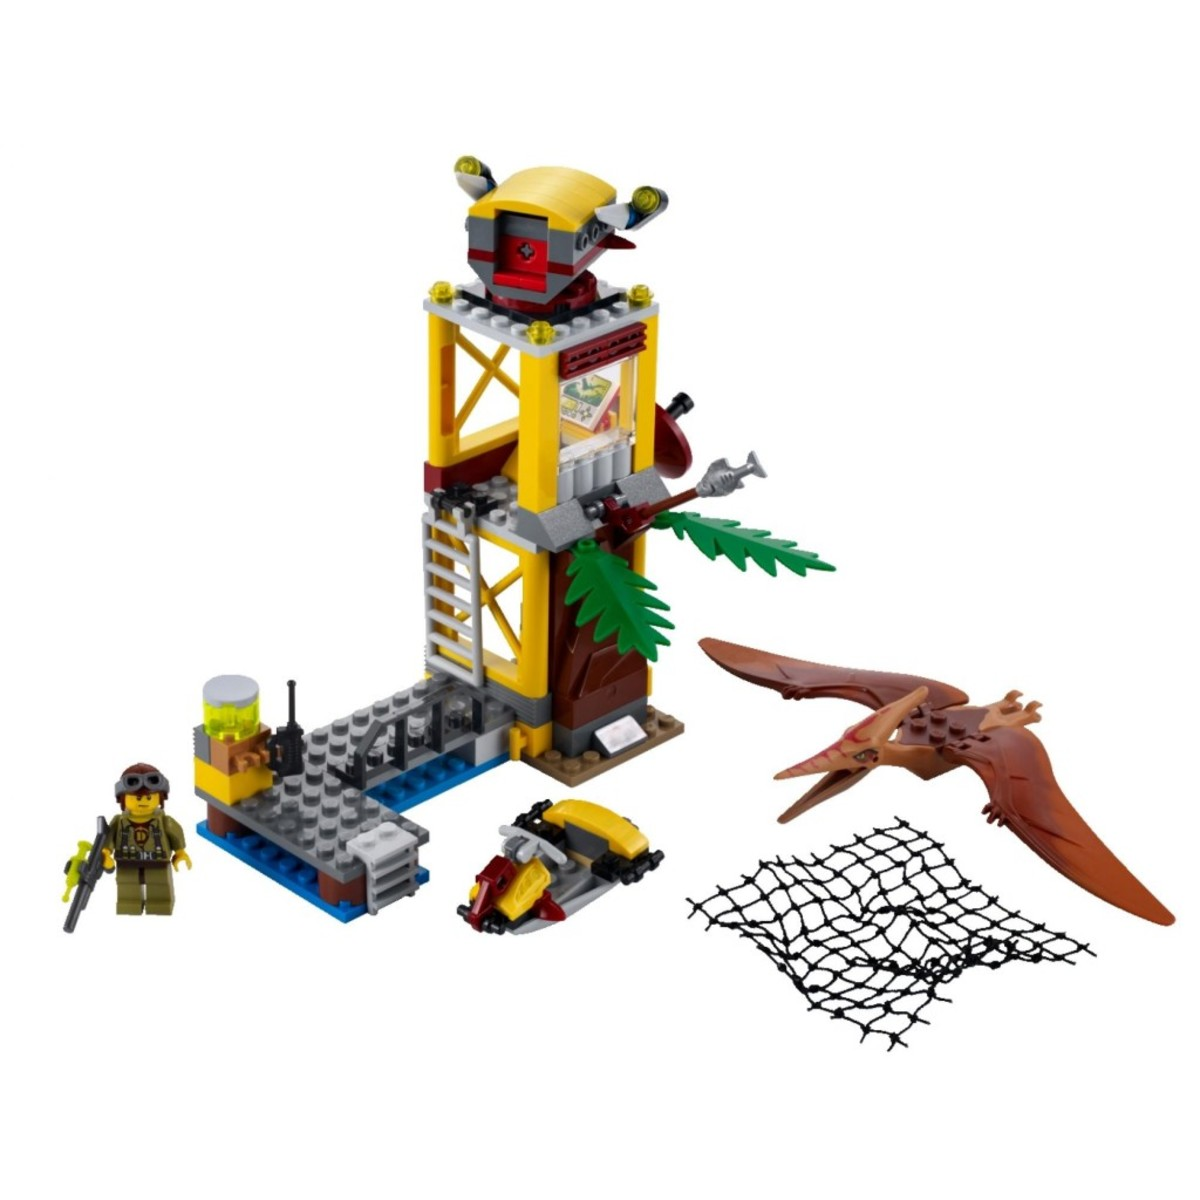 LEGO Dino Tower Takedown 5883 Assembled